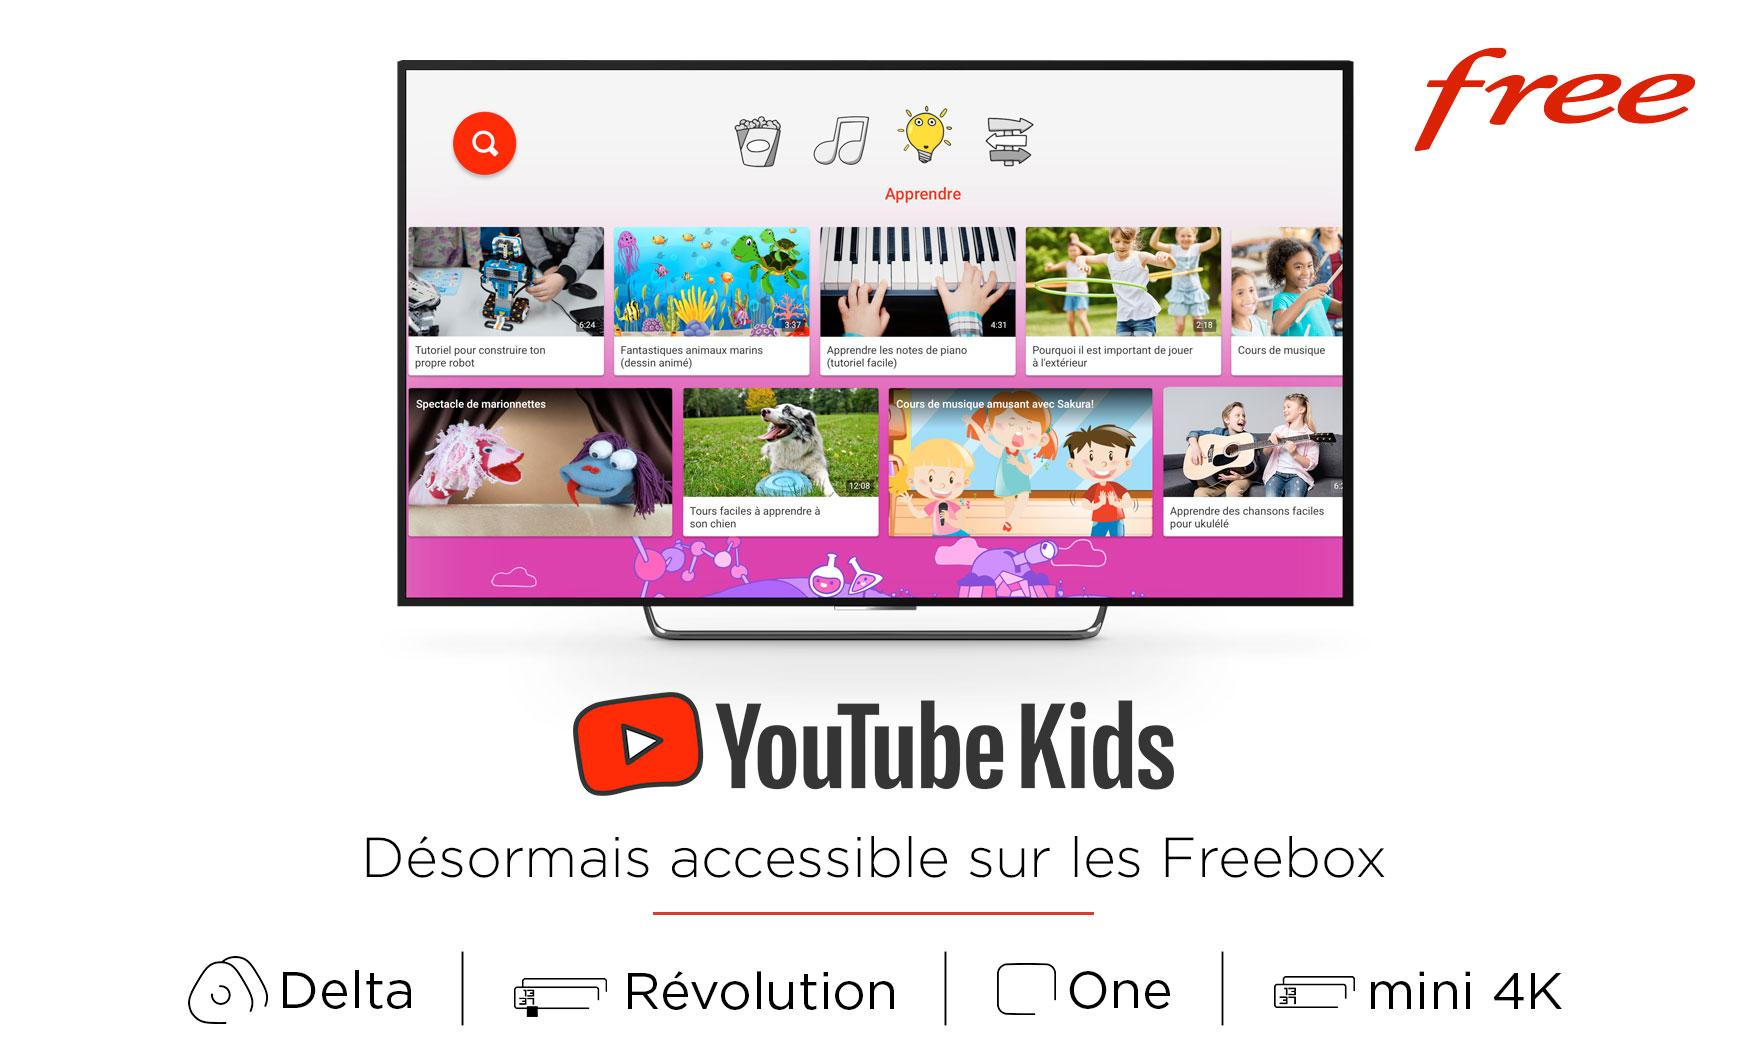 YouTube Kids désormais accessible sur les Freebox